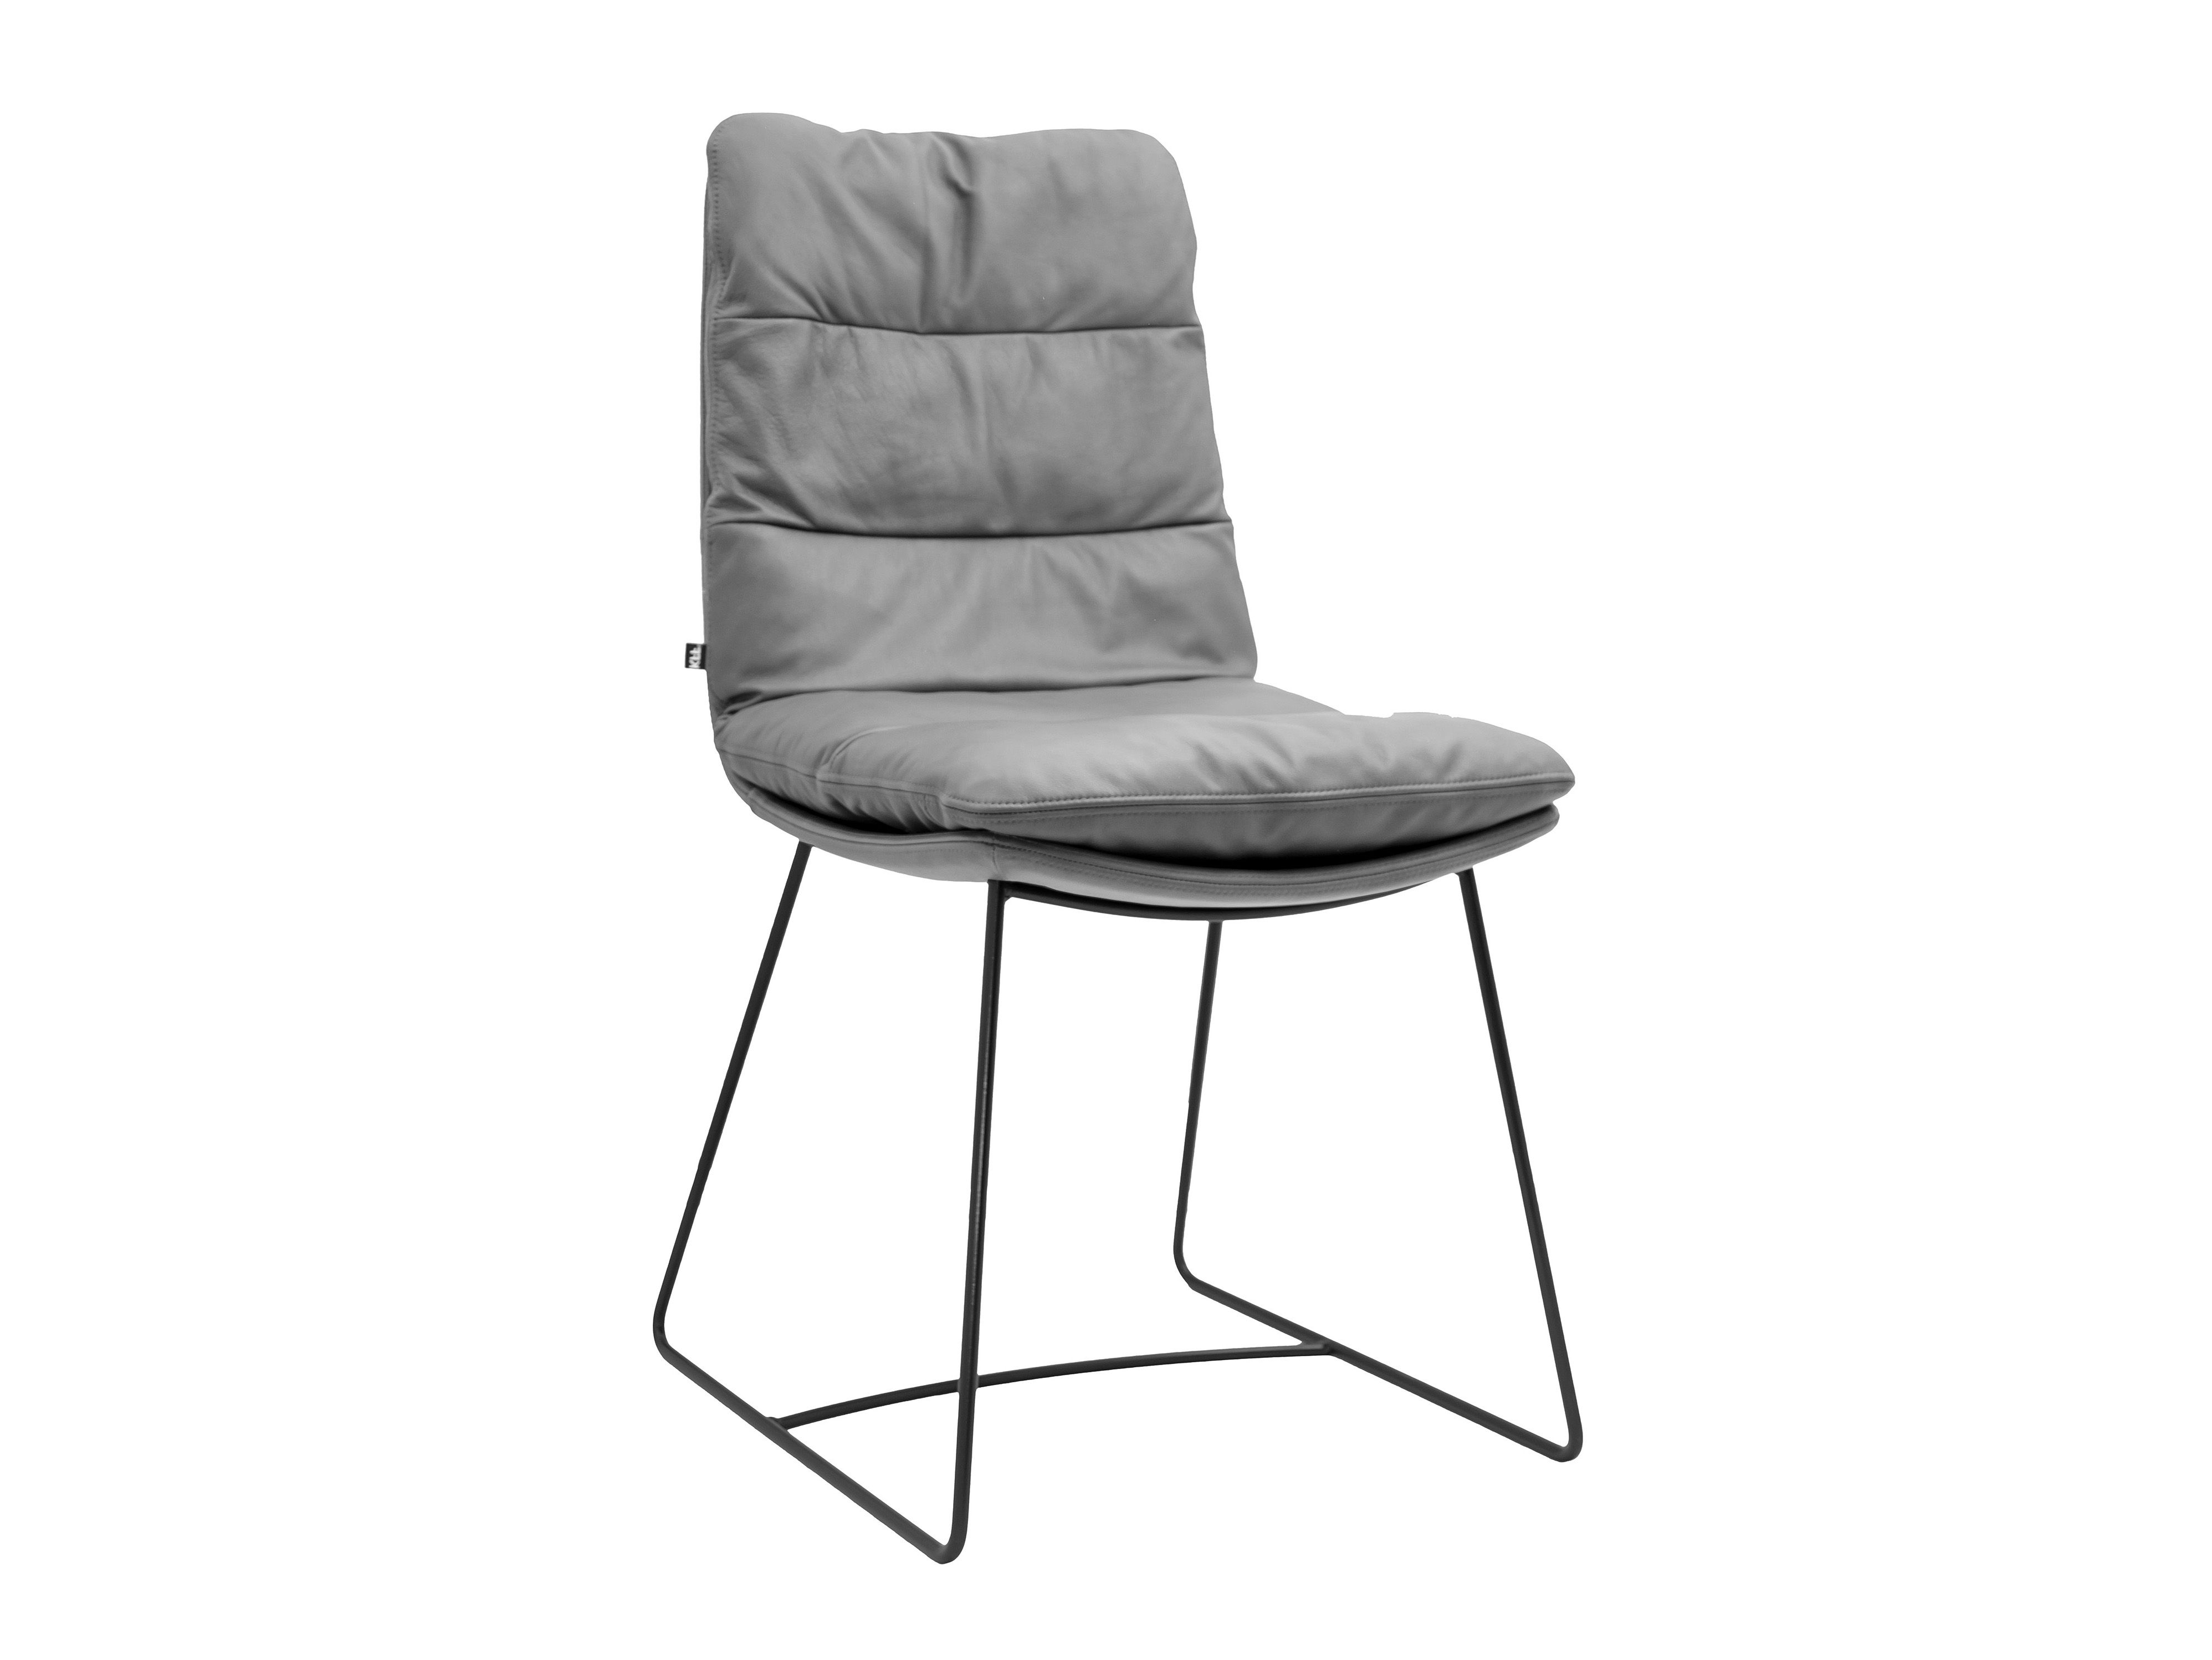 Arva Sled Base Chair Arva Collection By Kff Chair Light Chair Leather Chair